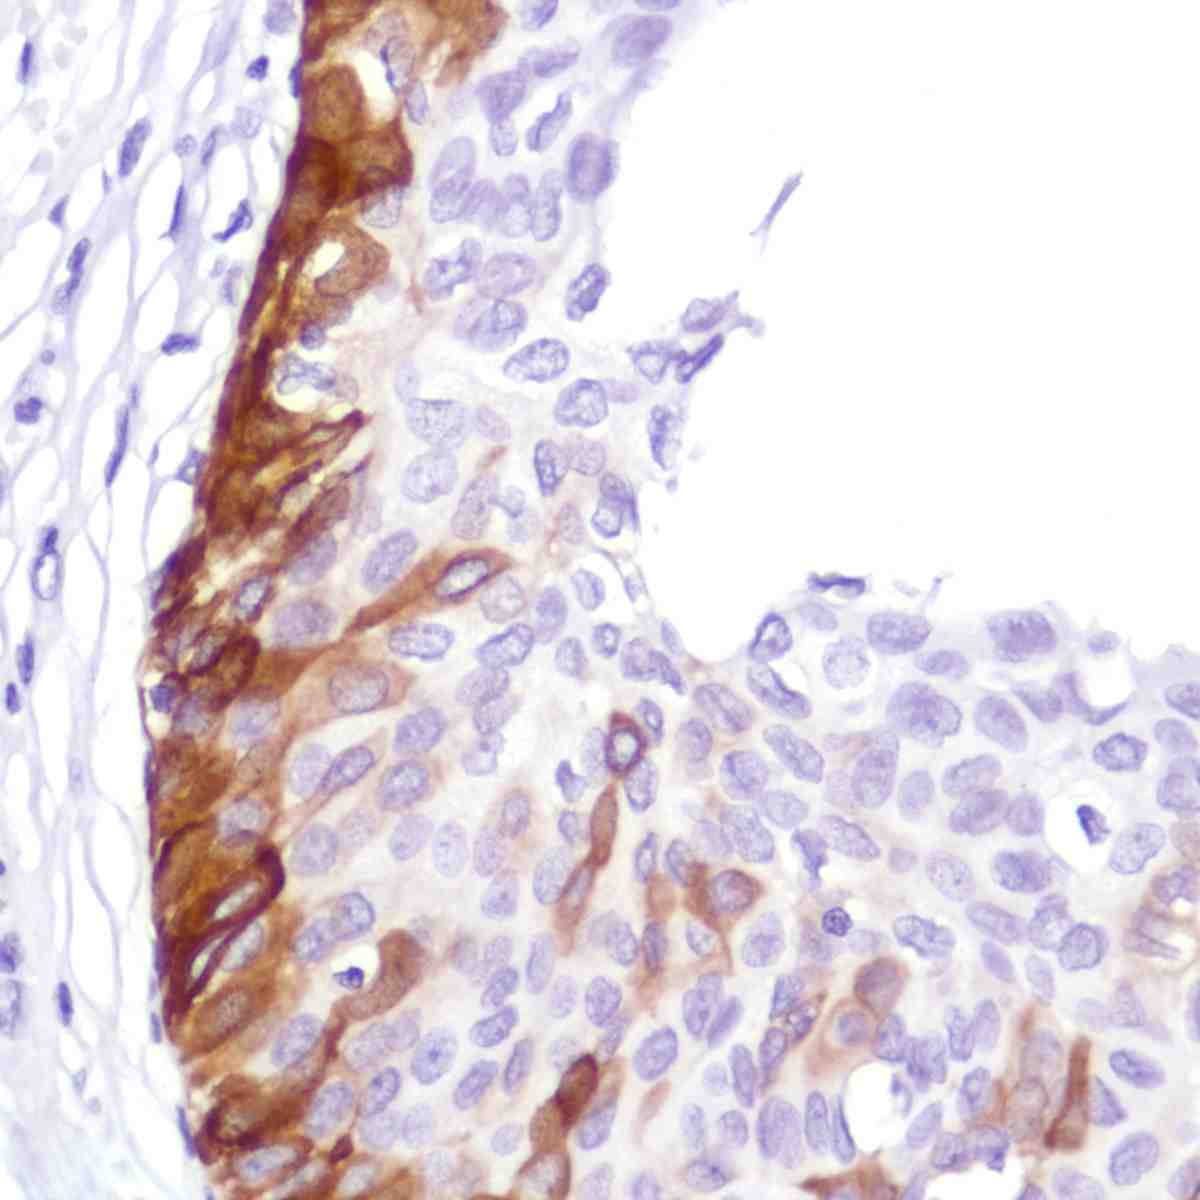 Human Bladder stained with anti-Keratin5 antibody